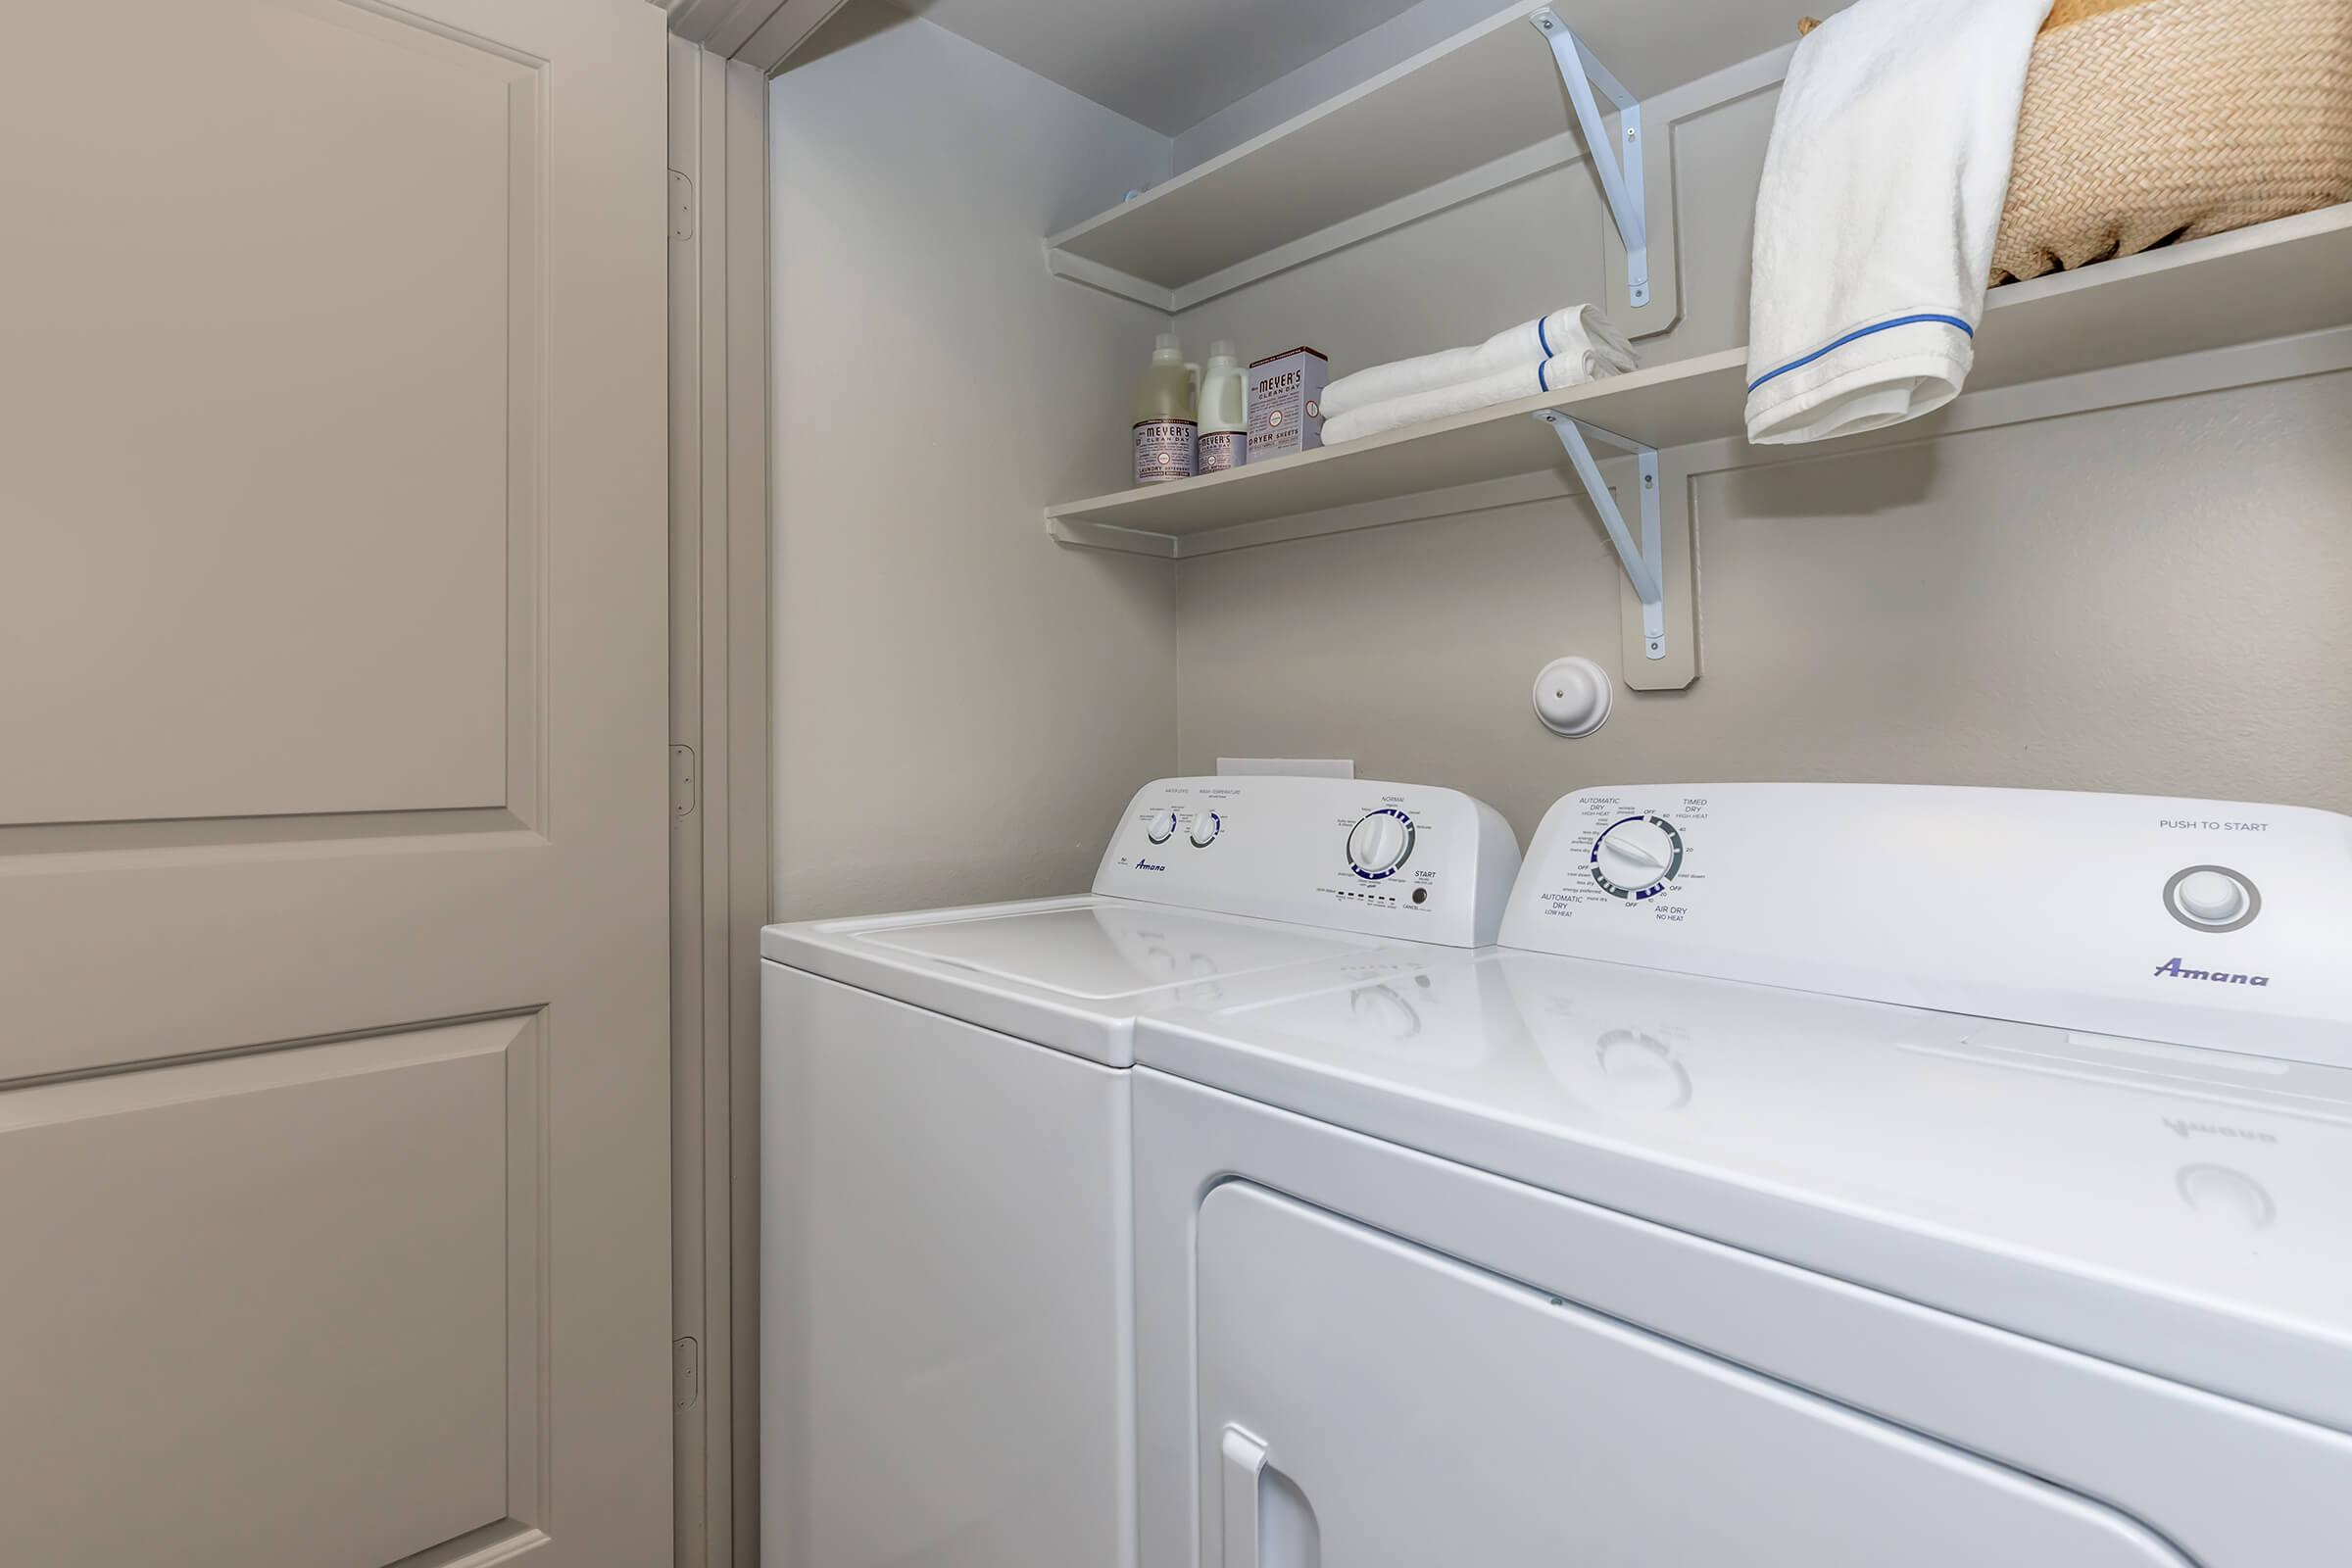 Full-size washer and dryer included with every brand new apartment home at Park at Tour 18.